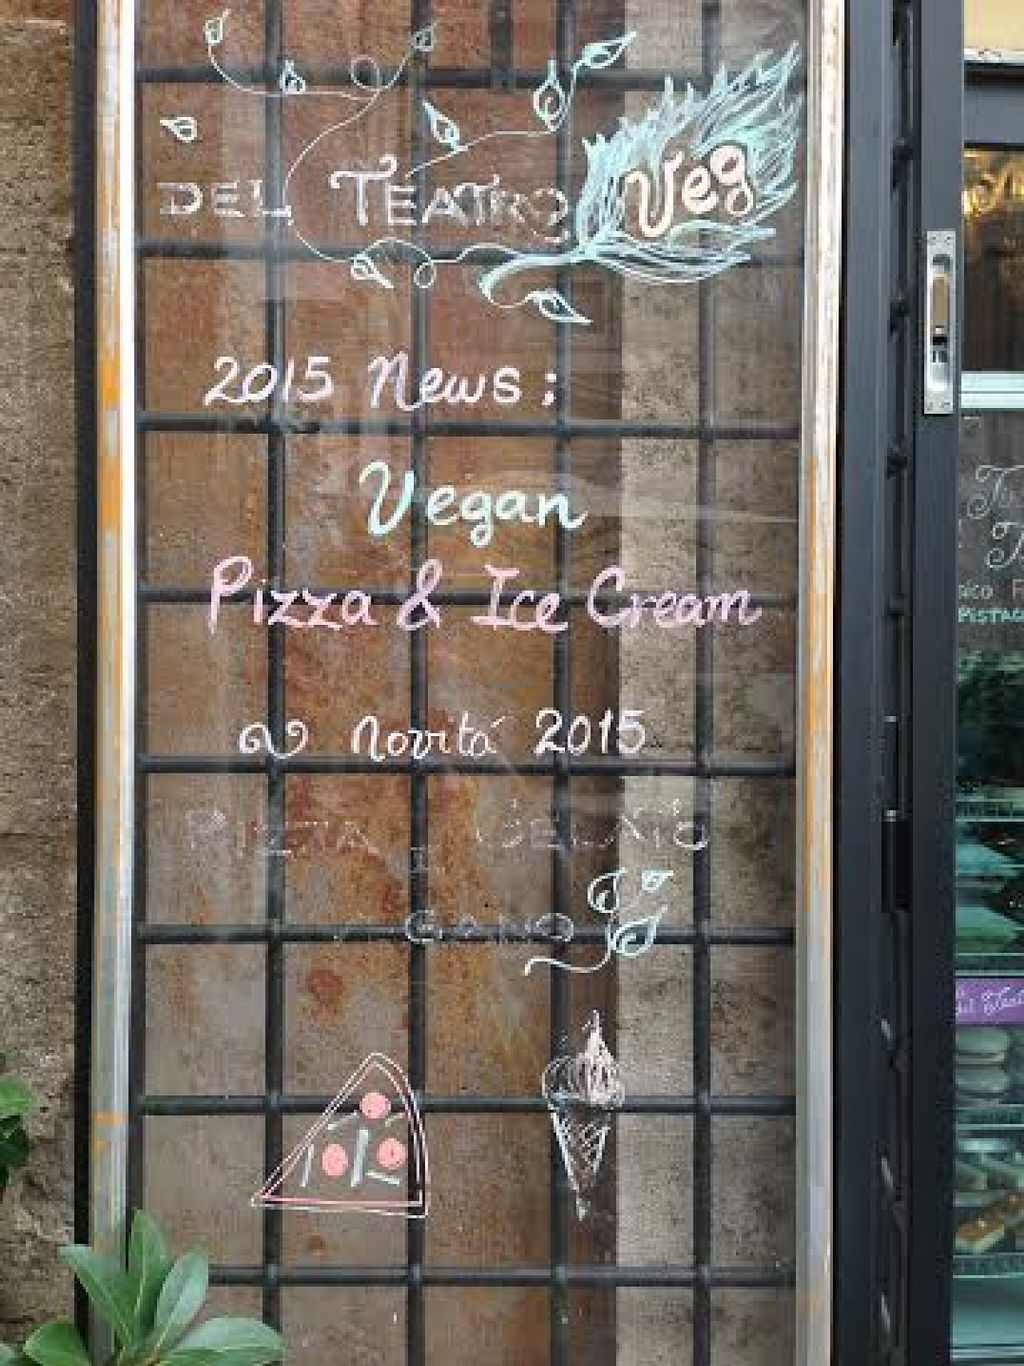 "Photo of La Pizza del Teatro  by <a href=""/members/profile/Lesley%20Anne%20Jeavons"">Lesley Anne Jeavons</a> <br/>advertising vegan options <br/> August 14, 2015  - <a href='/contact/abuse/image/62008/113583'>Report</a>"